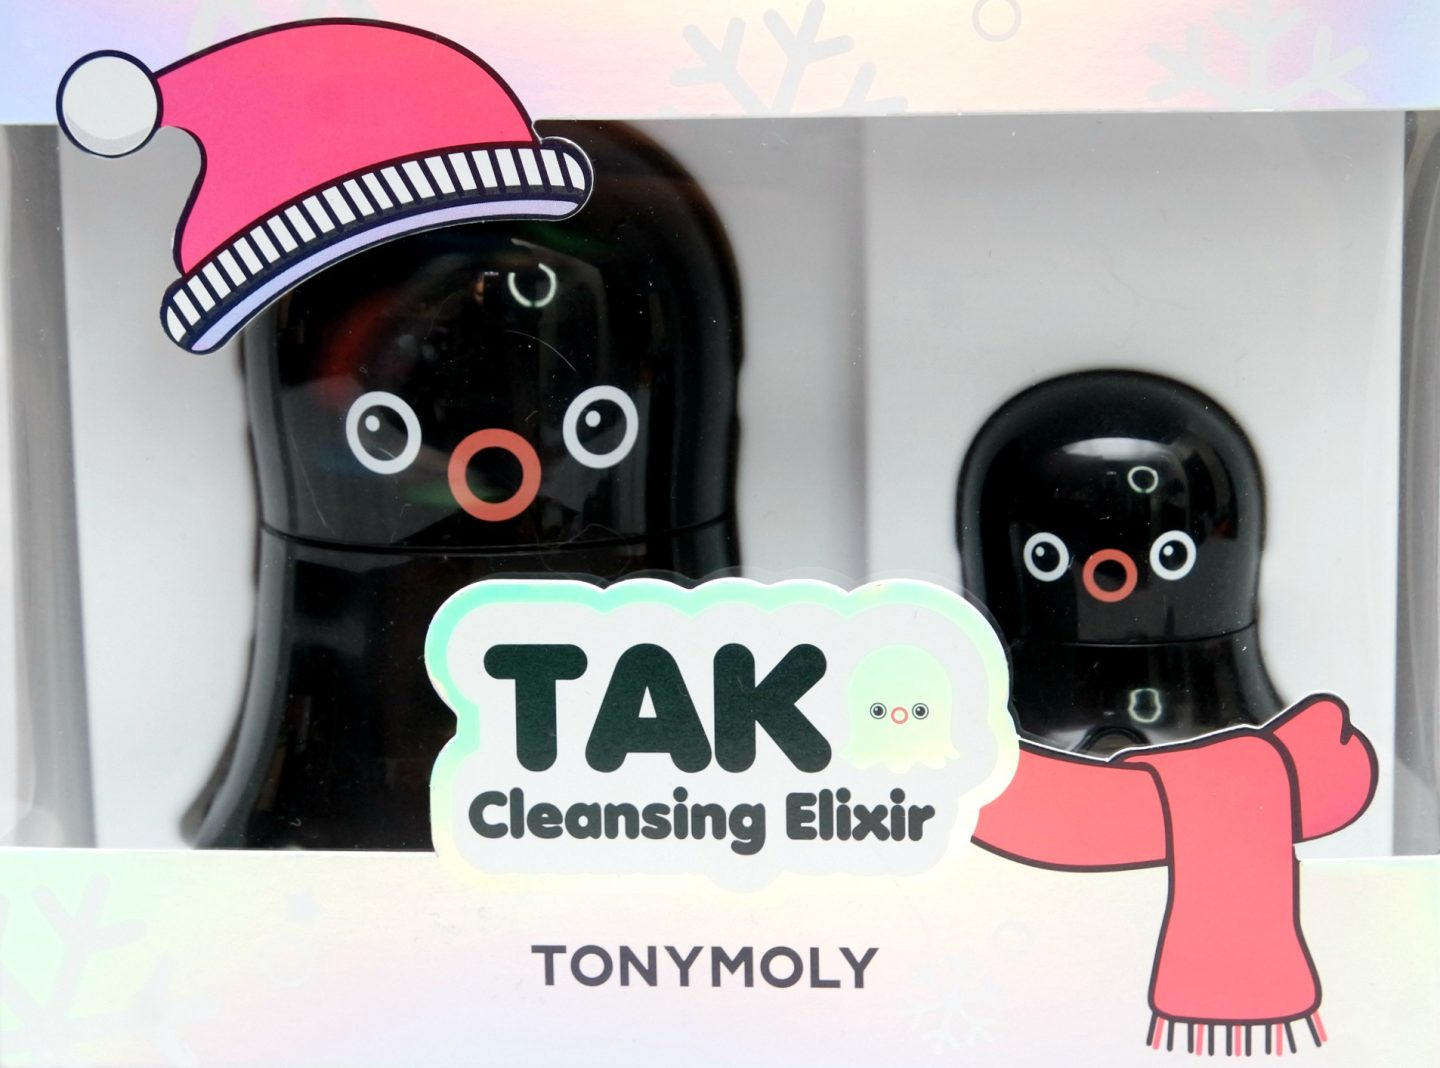 TONYMOLY Tako Cleansing Elixir Holiday Set Review